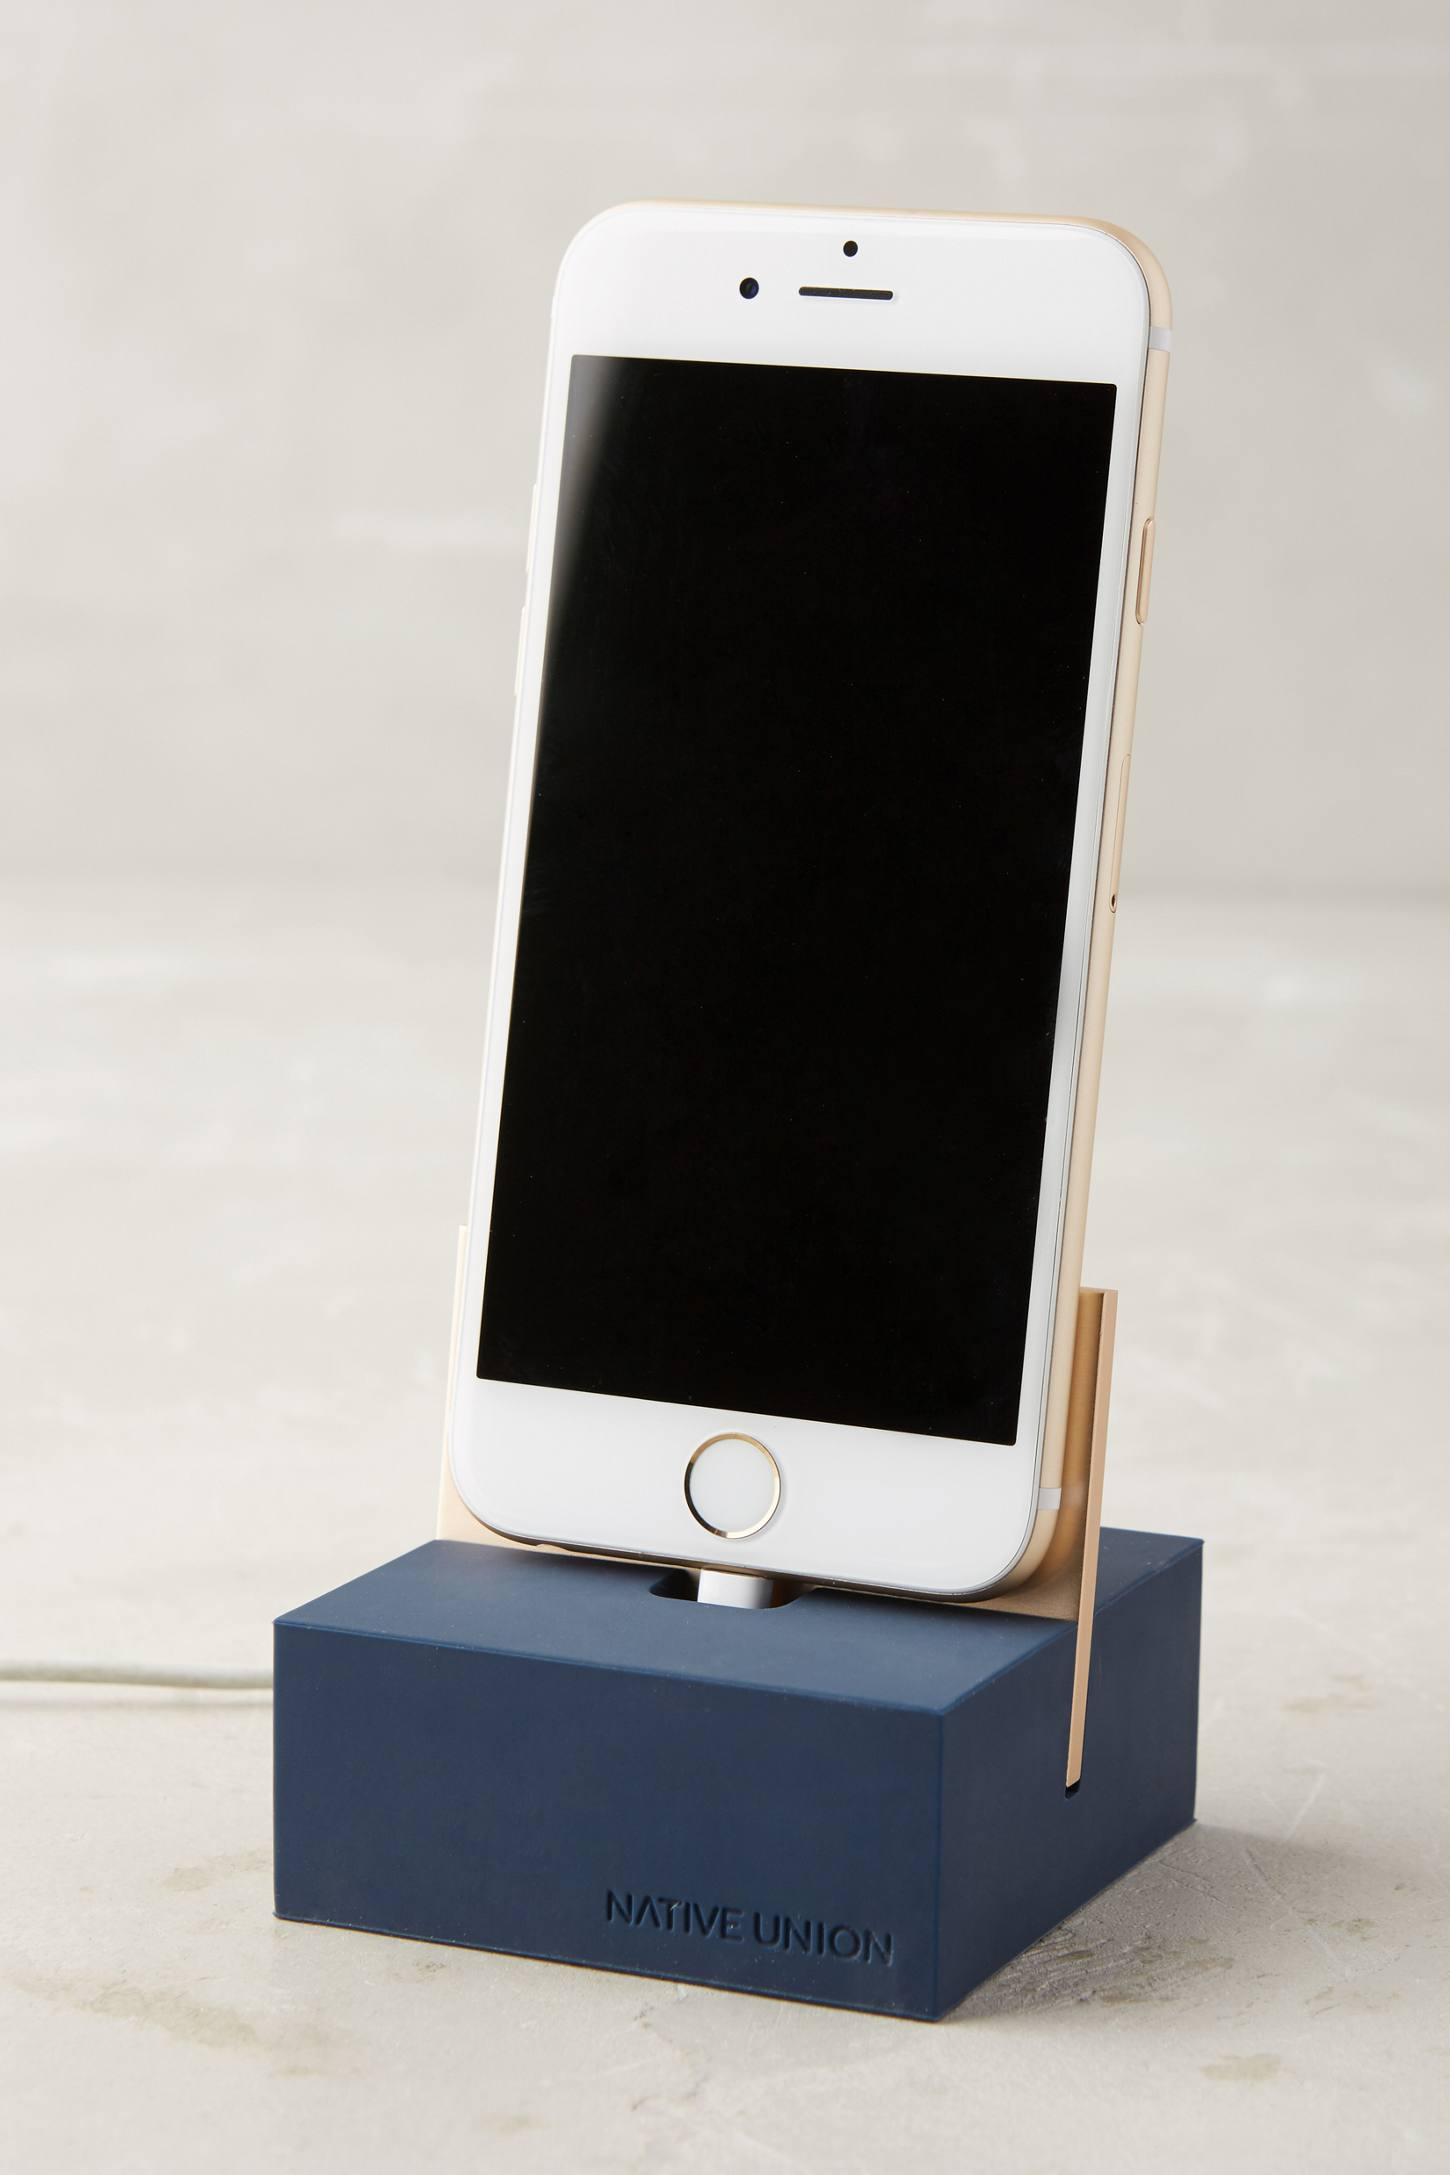 Native Union Phone Dock, $50